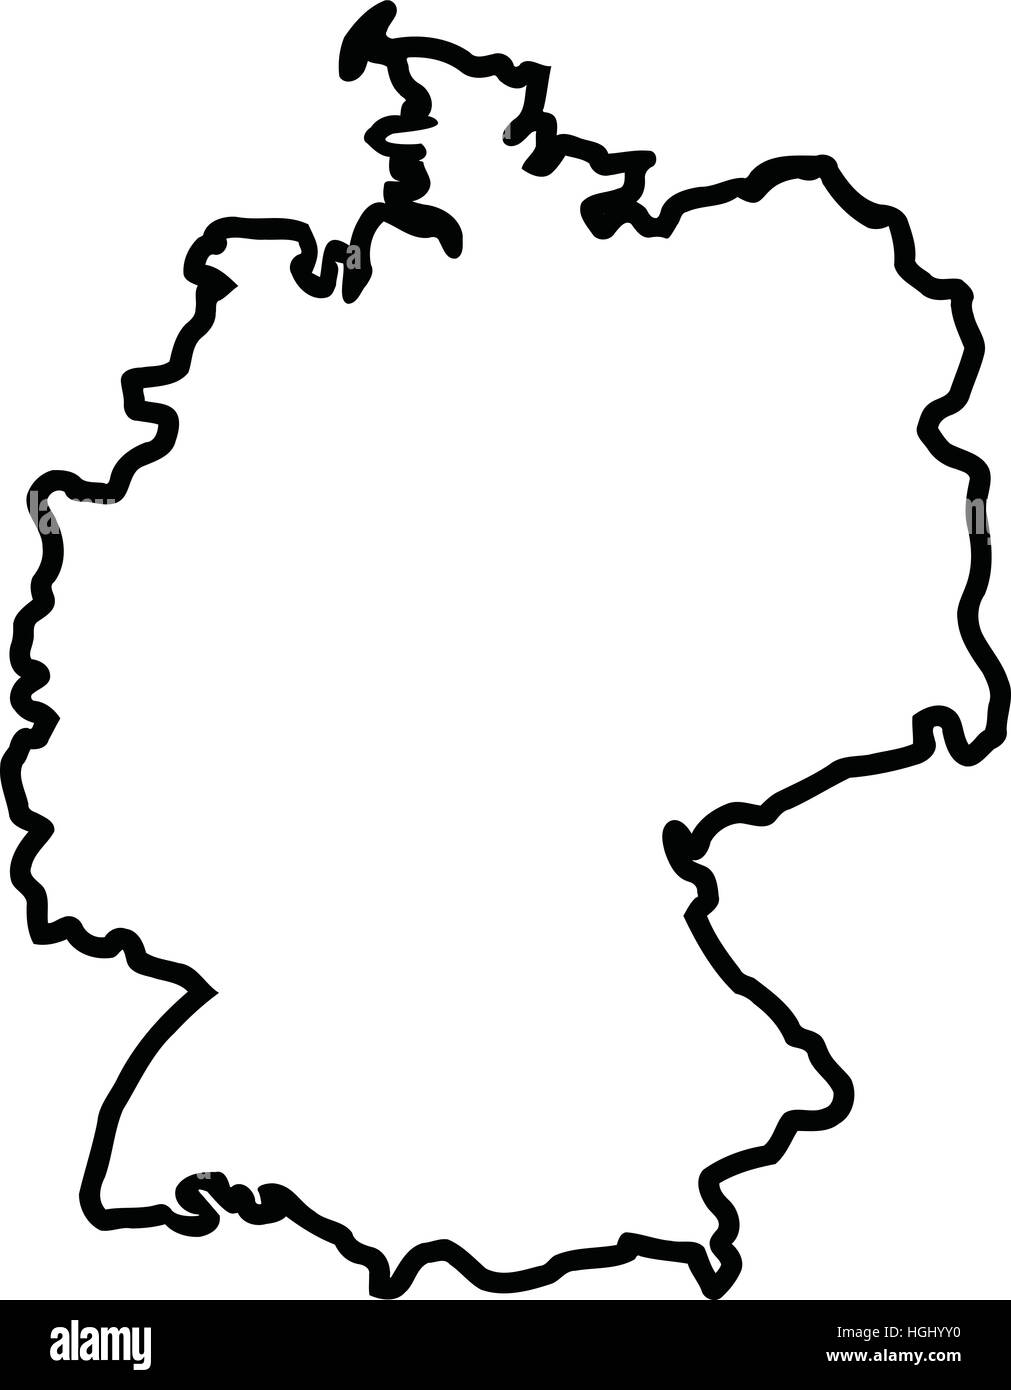 Germany Map Contour Stock Photo Royalty Free Image Alamy - Germany map clipart